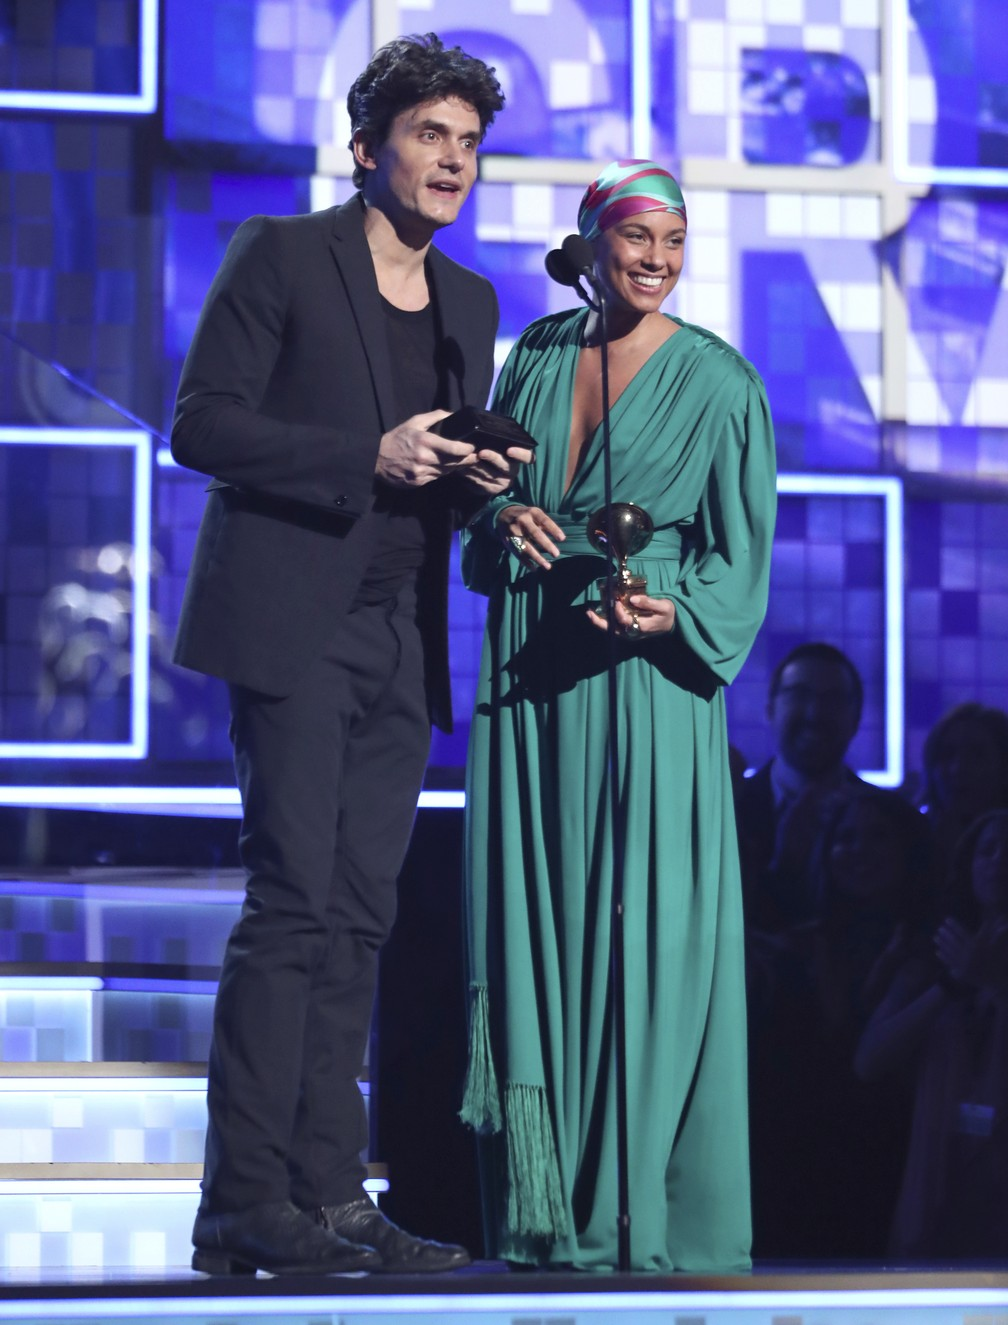 John Mayer e Alicia Keys apresentam prêmio de Música do Ano no Grammy 2019, em Los Angeles — Foto: Matt Sayles/Invision/AP